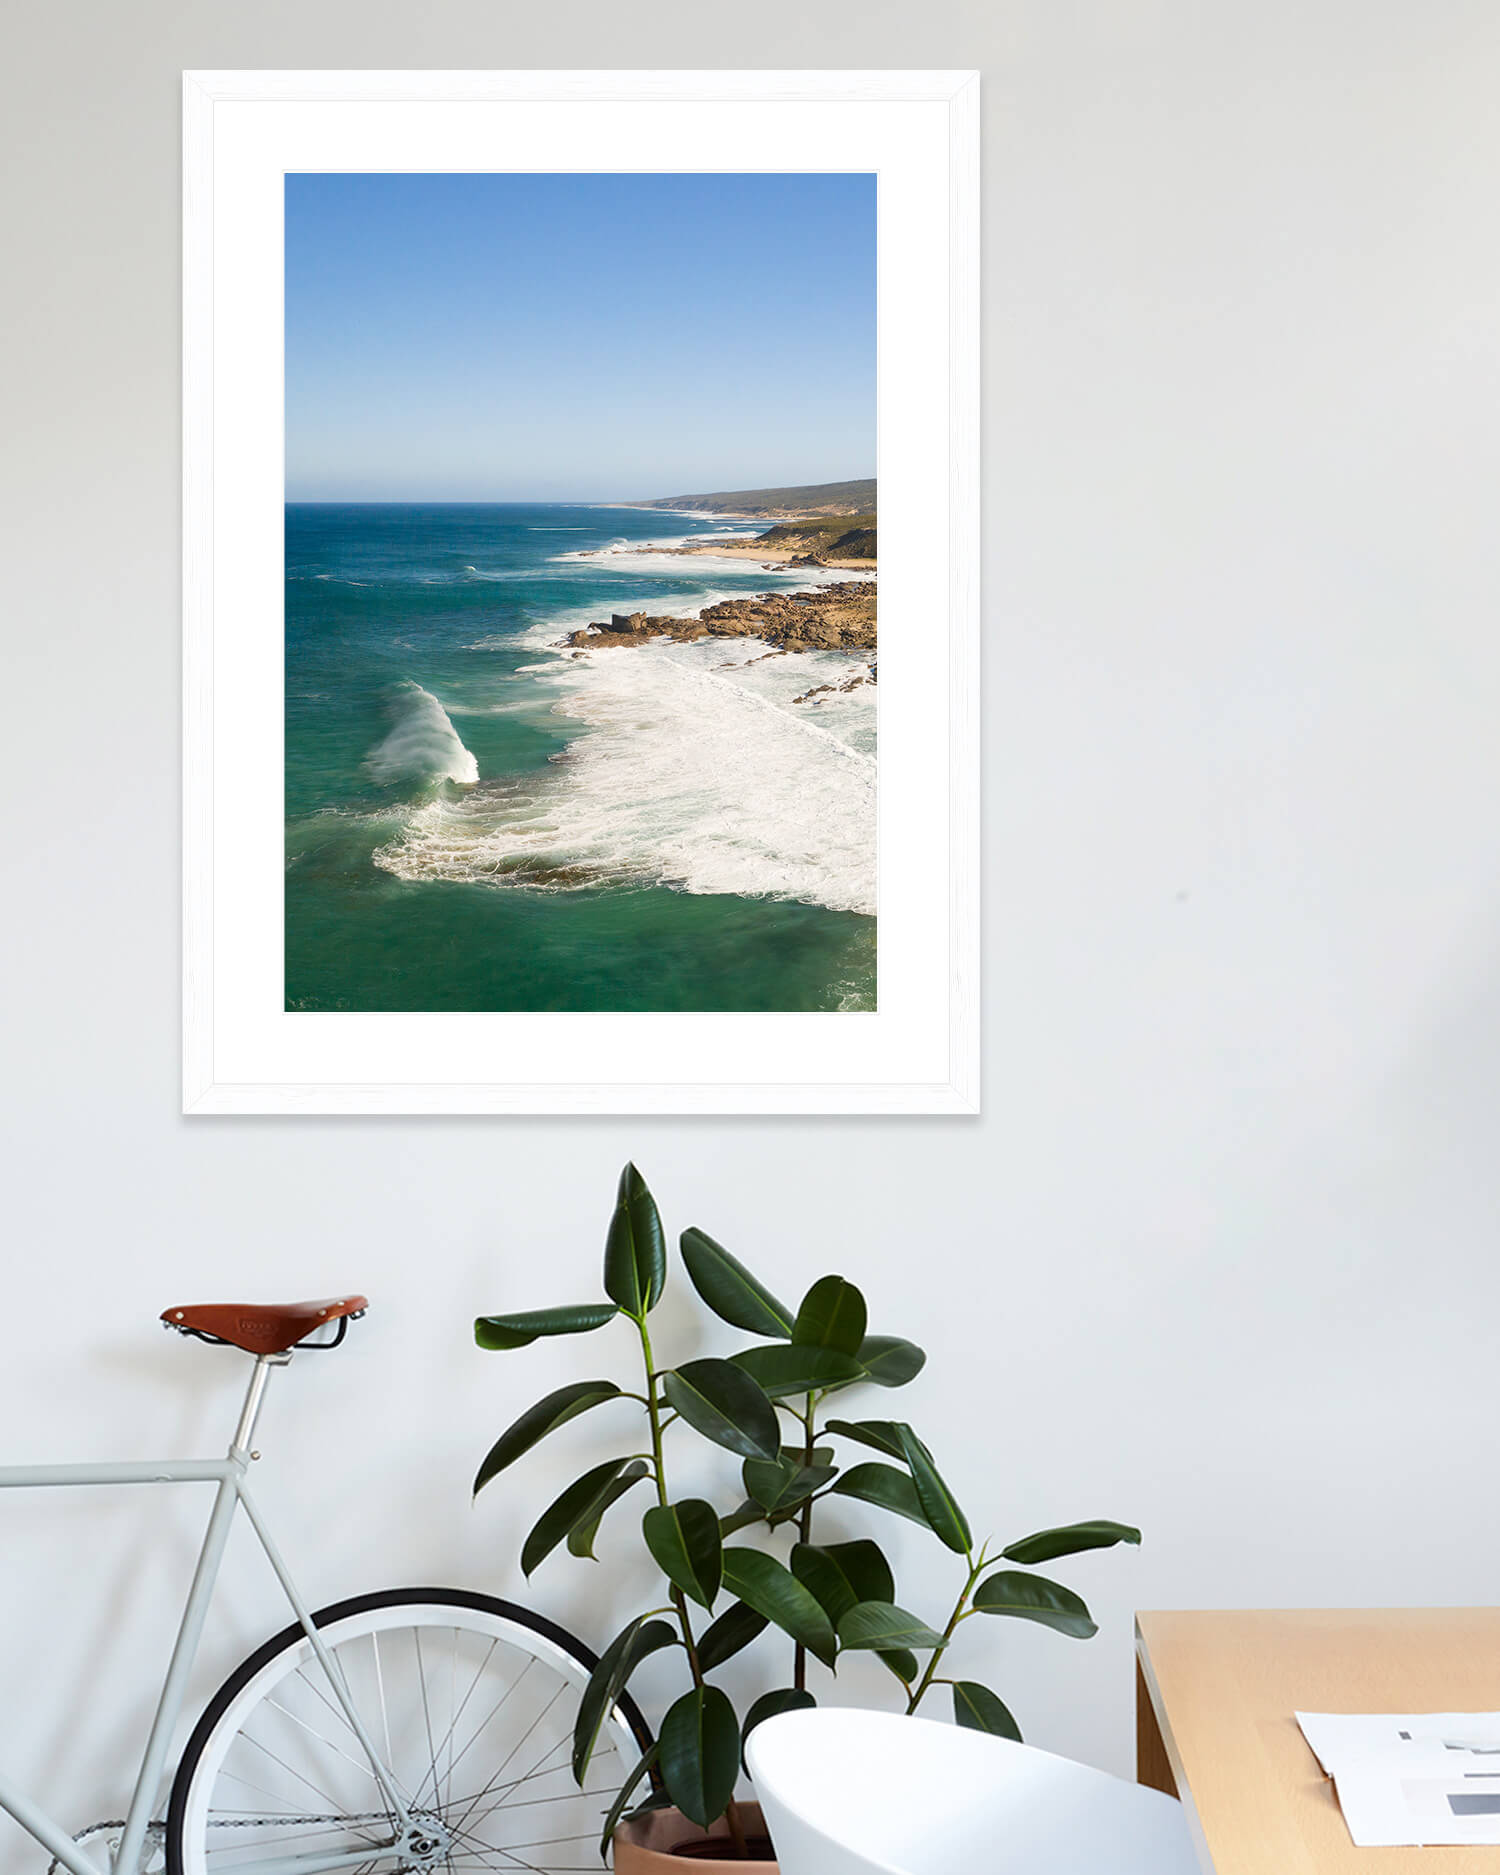 Azure Co - Landscape and Surf Photography, Honeycombs Western Australia